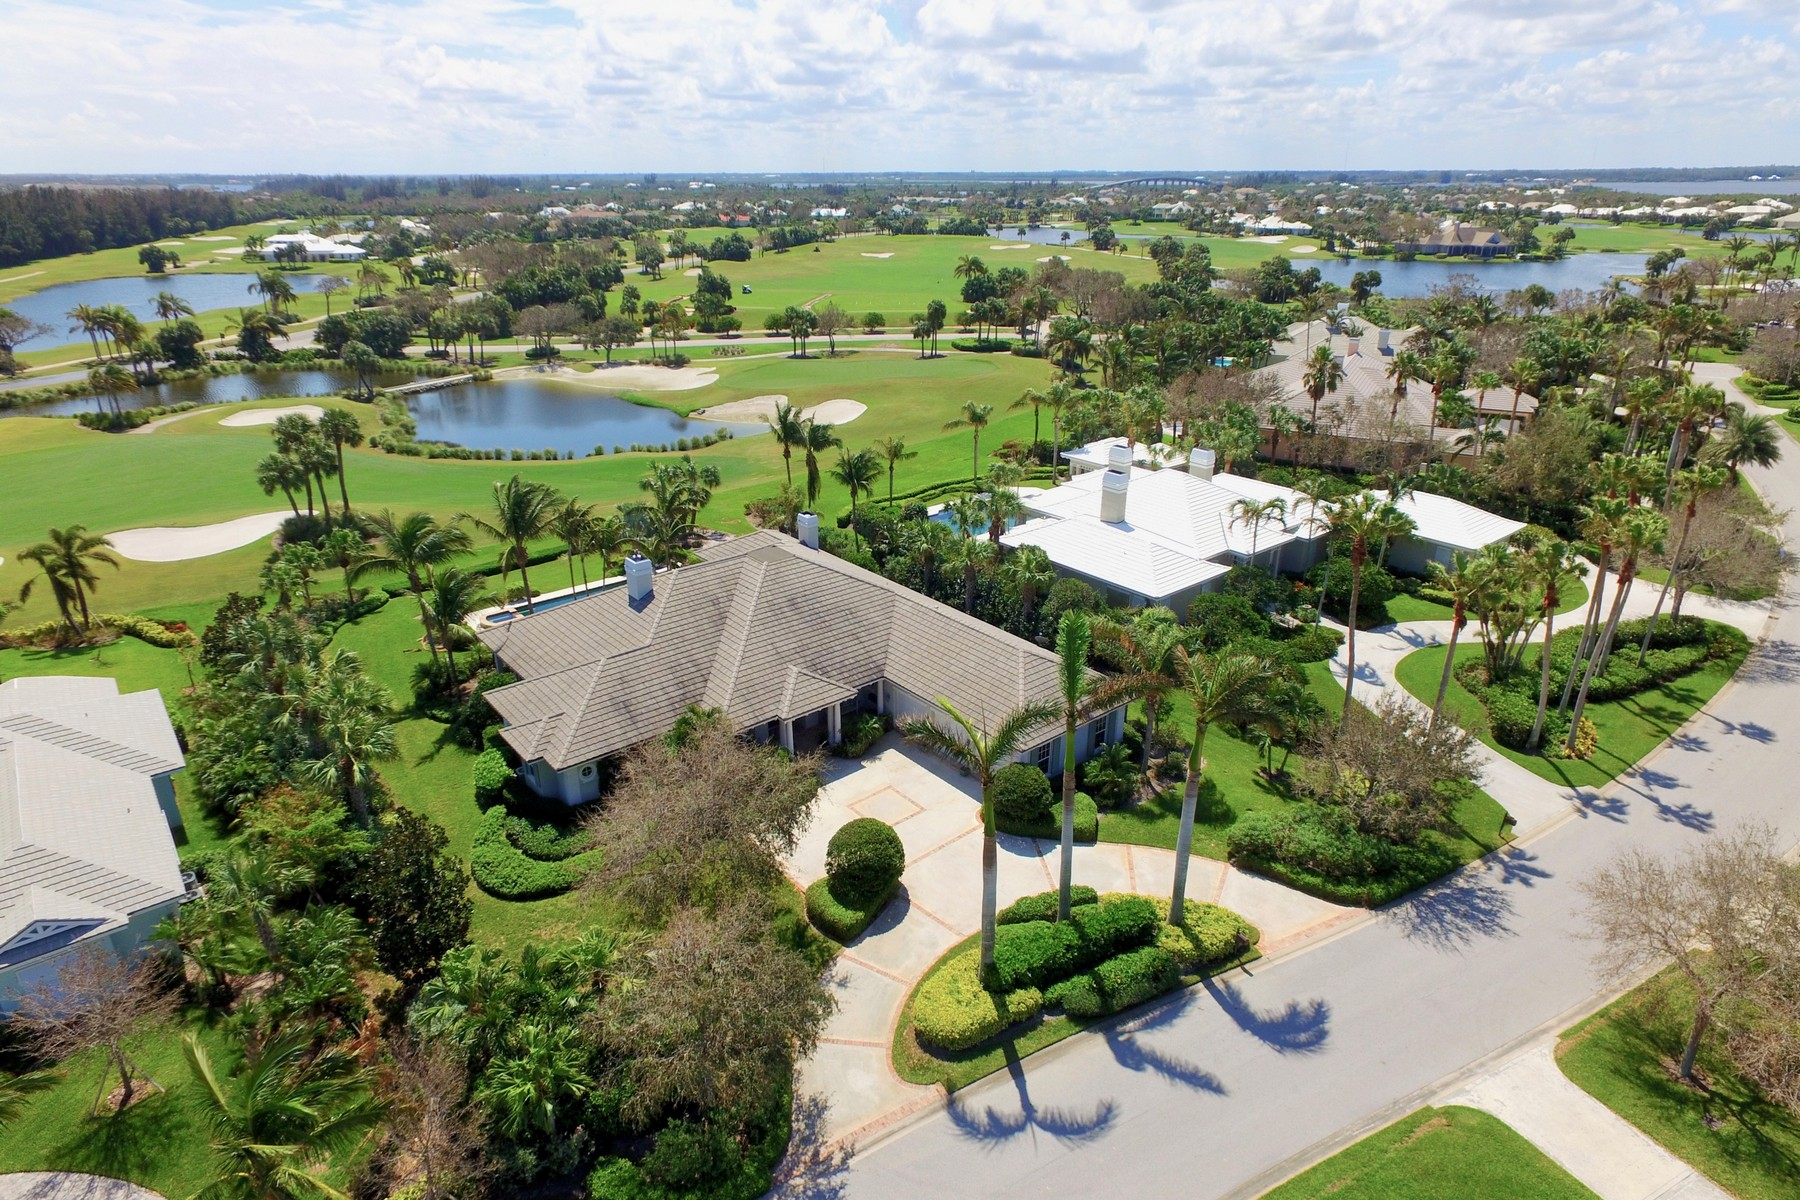 Casa para uma família para Venda às Lakefront Home with Endless Golf Views 130 Seaspray Lane Vero Beach, Florida 32963 Estados Unidos